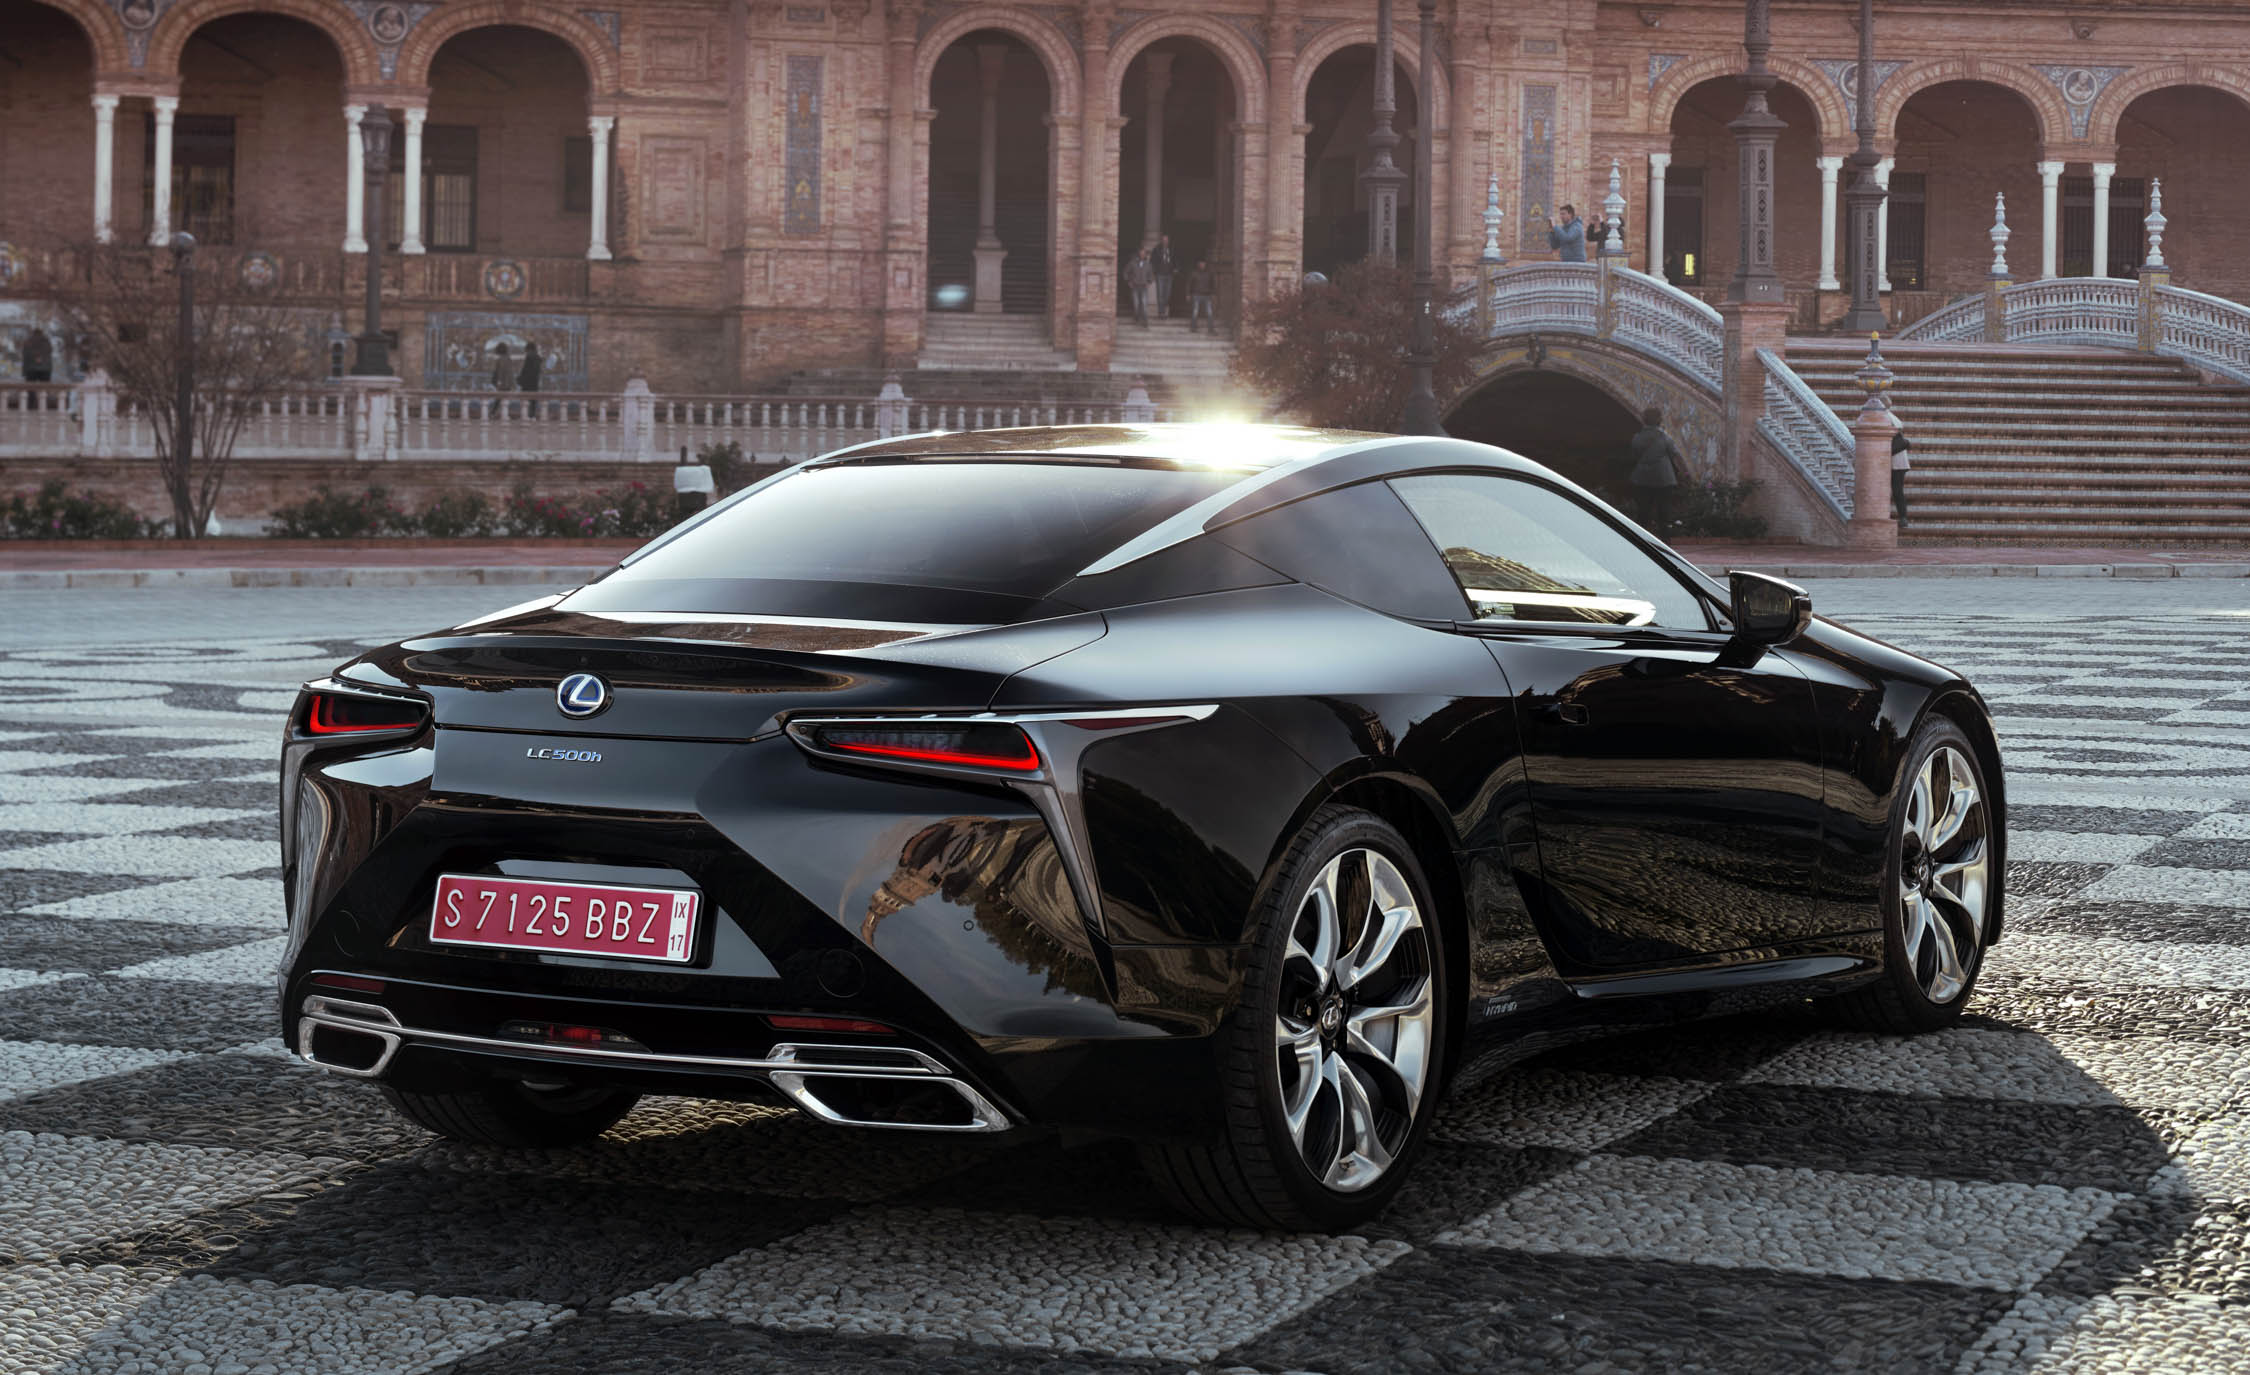 2018 Lexus Lc 500h Black Exterior Rear And Side (Photo 44 of 84)